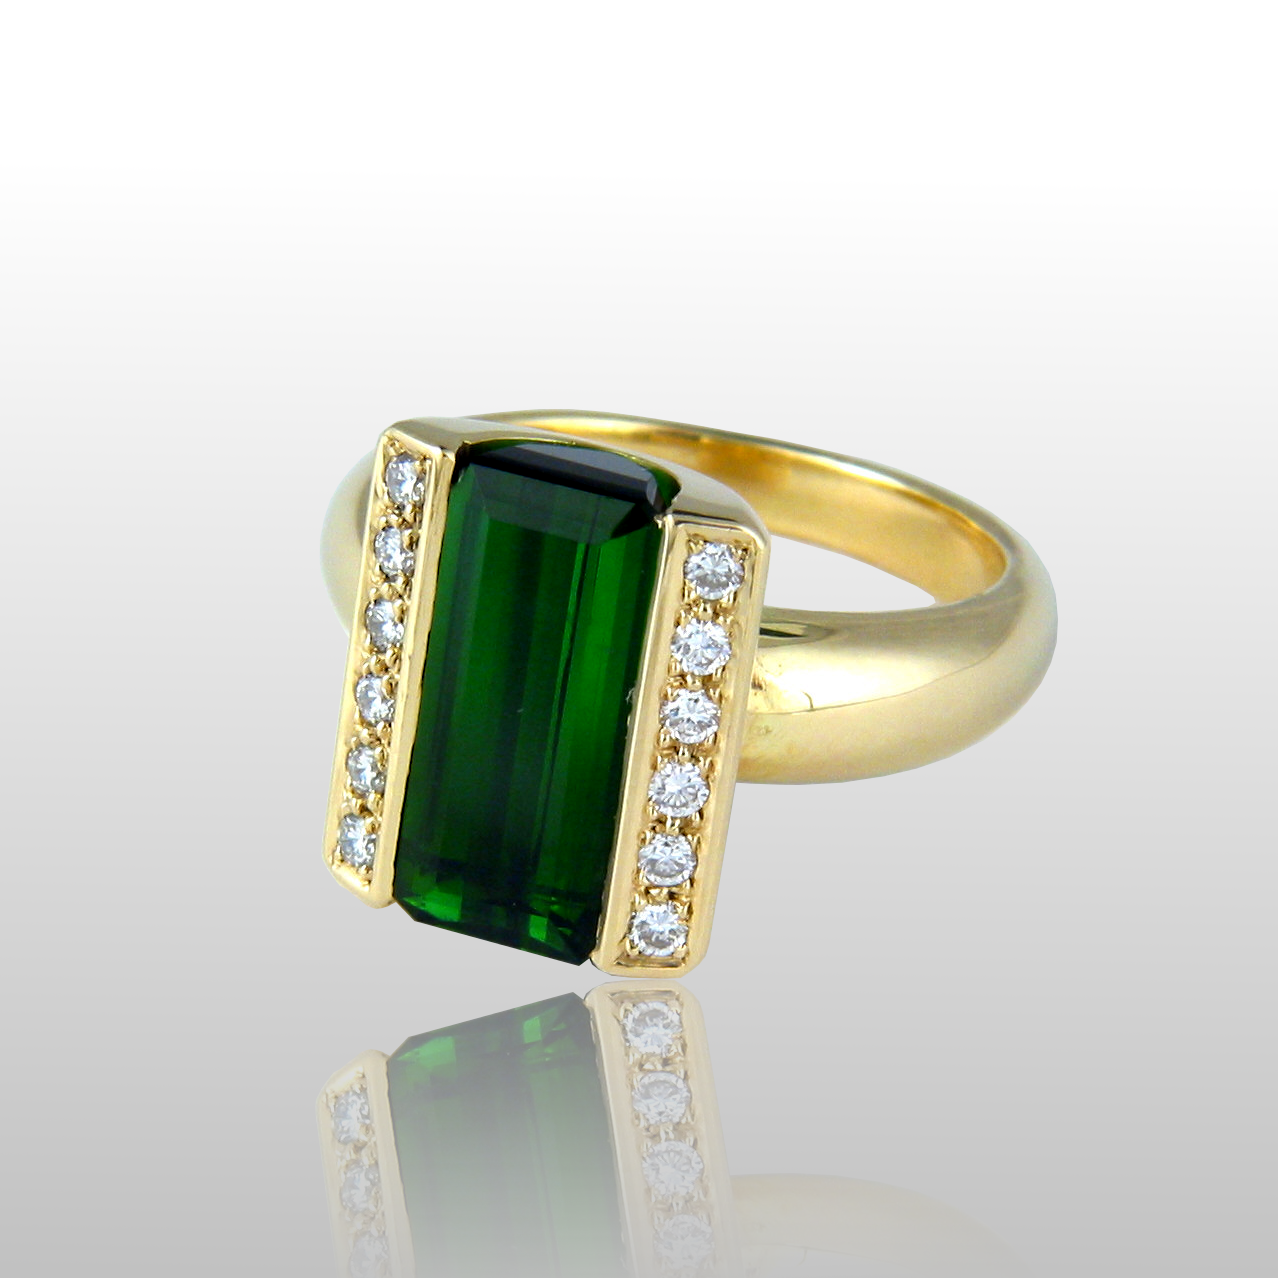 One-of-a-Kind 18k Gold Ring with Green Tourmaline and Diamonds by Pratima Design Fine Art Jewelry